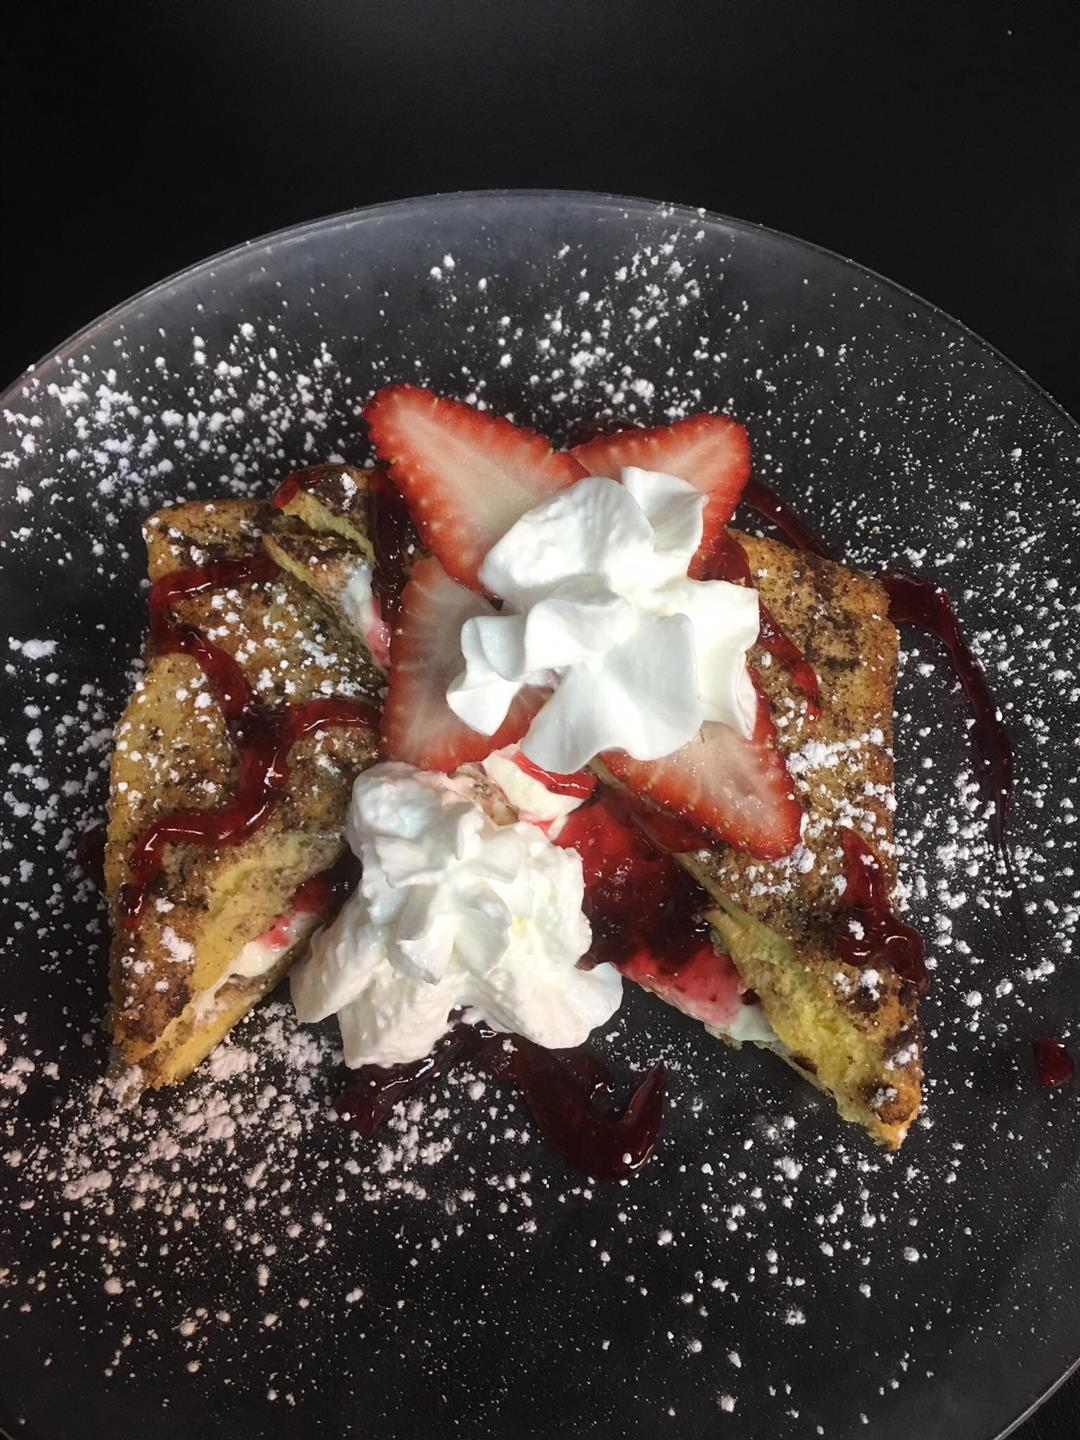 french toast with strawberries, strawberry drizzle, powdered sugar and whipped cream on top